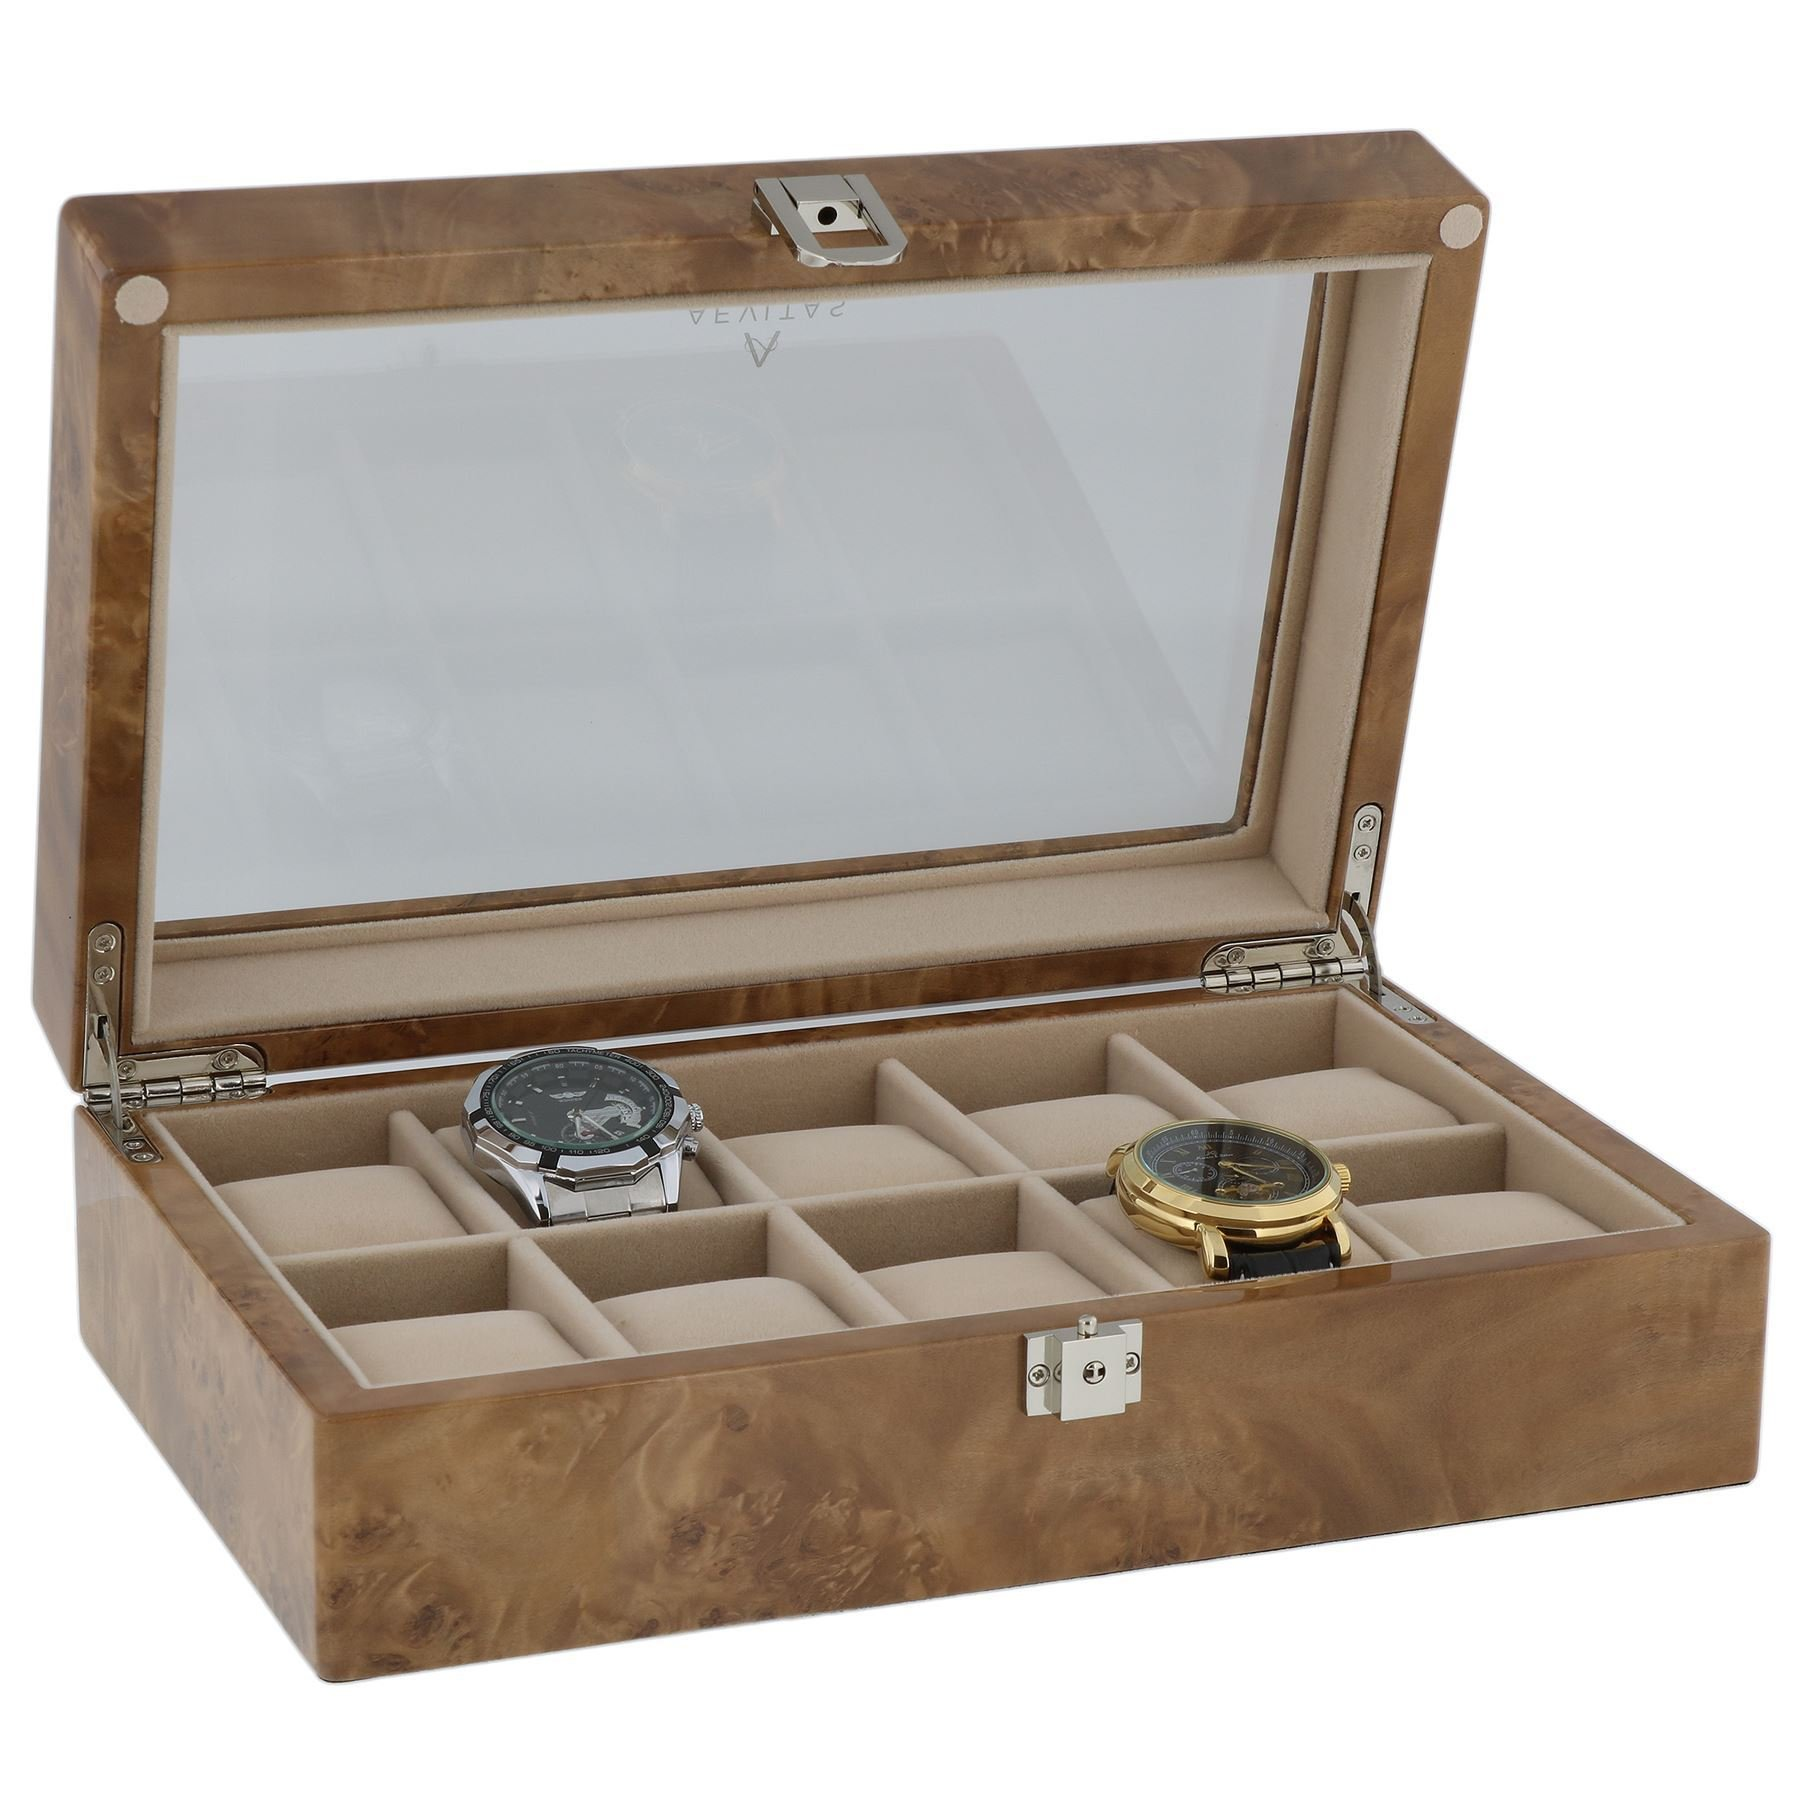 Watch Collectors Box for 10 Wrist Watches in Light Burl Wood by Aevitas